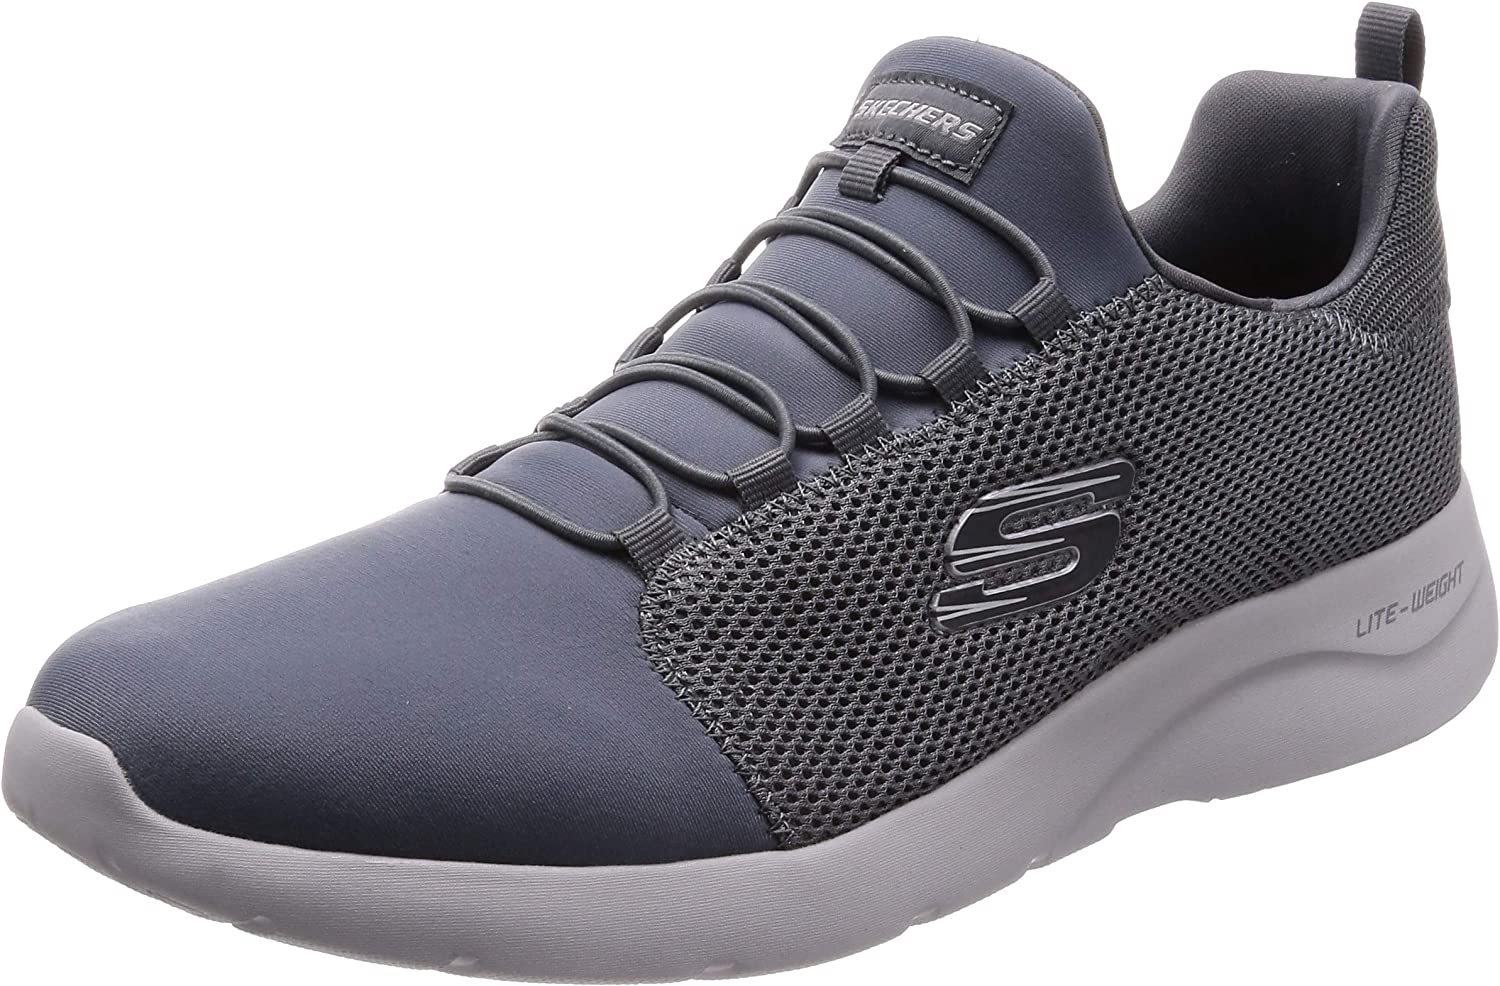 Skechers Dynamight 2.0 Mens Bungee Lace